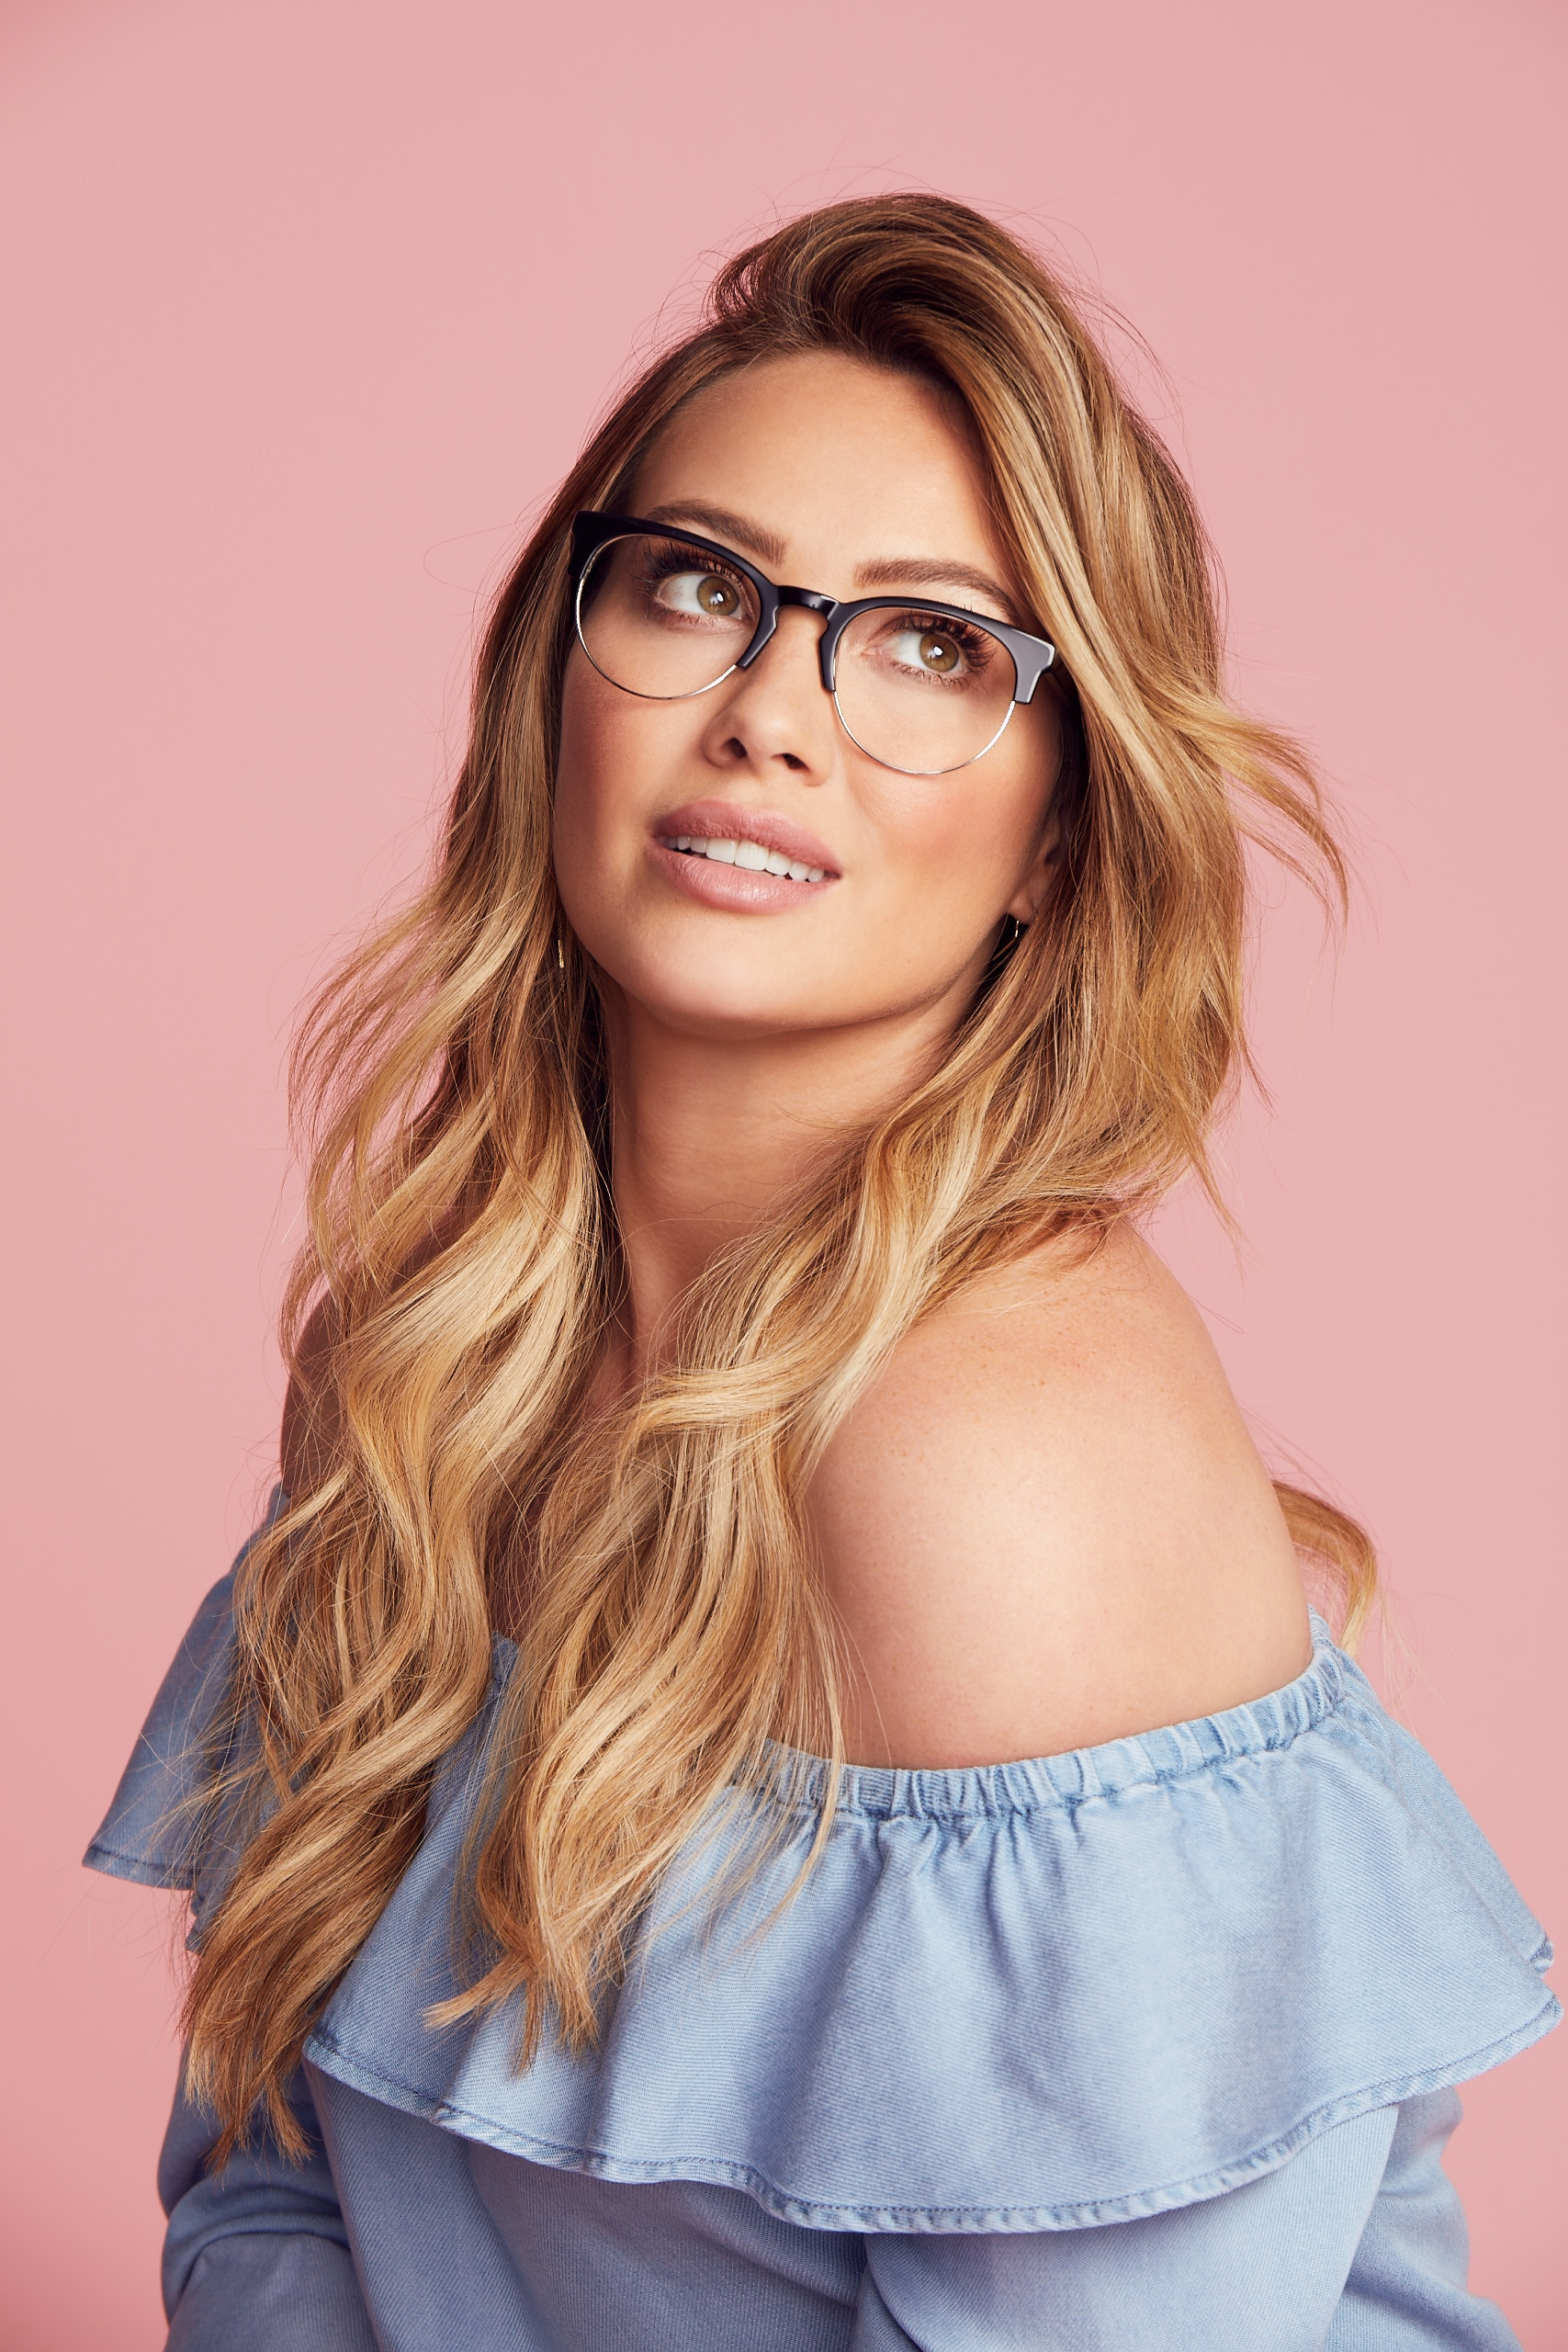 Muse x Hilary Duff Henrietta Prescription Eyeglasses Hilary Duff Eyeglasses